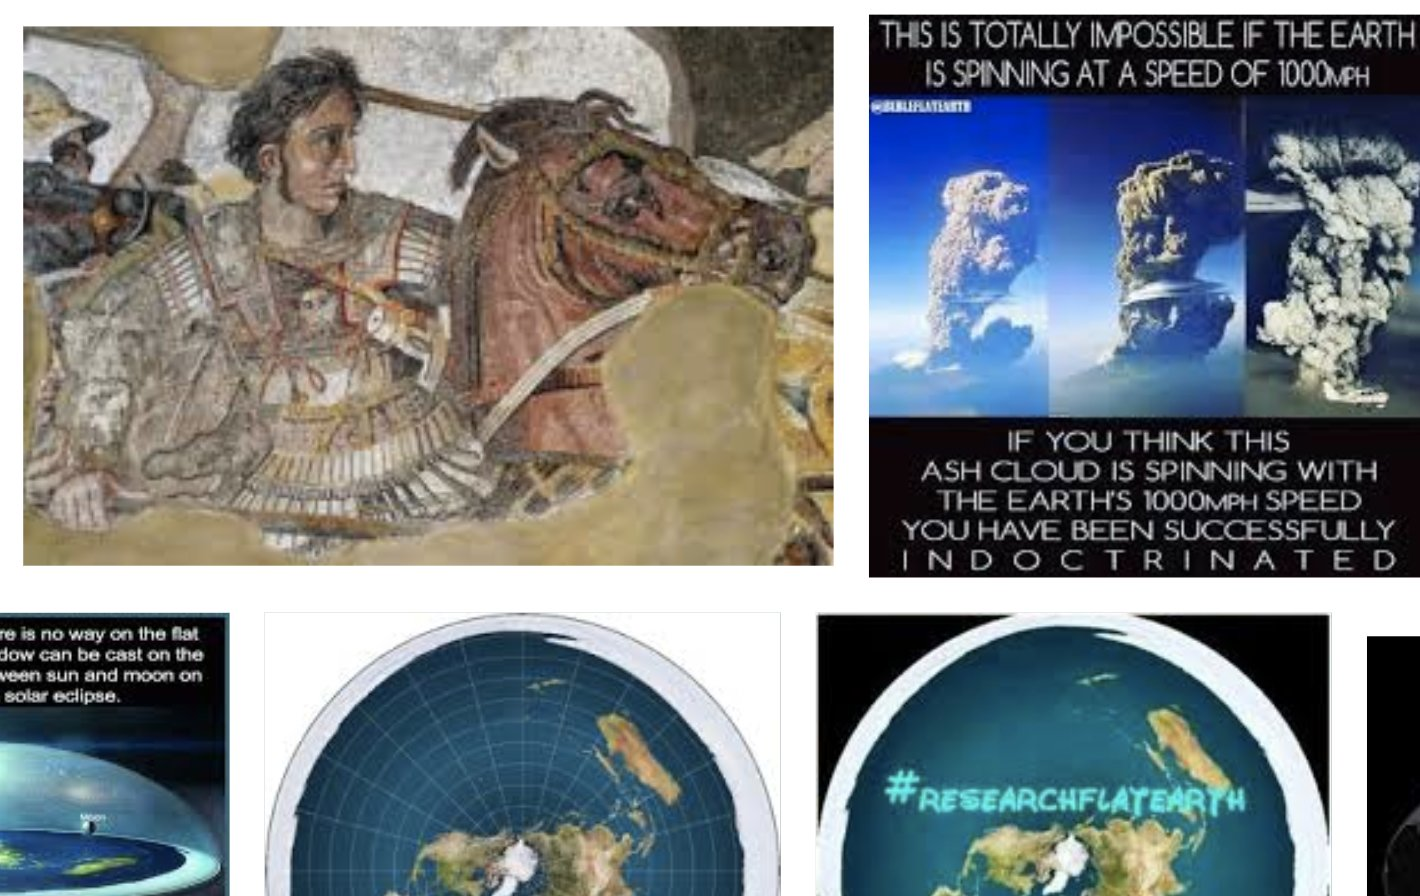 Alexander the Great and the flat Earth